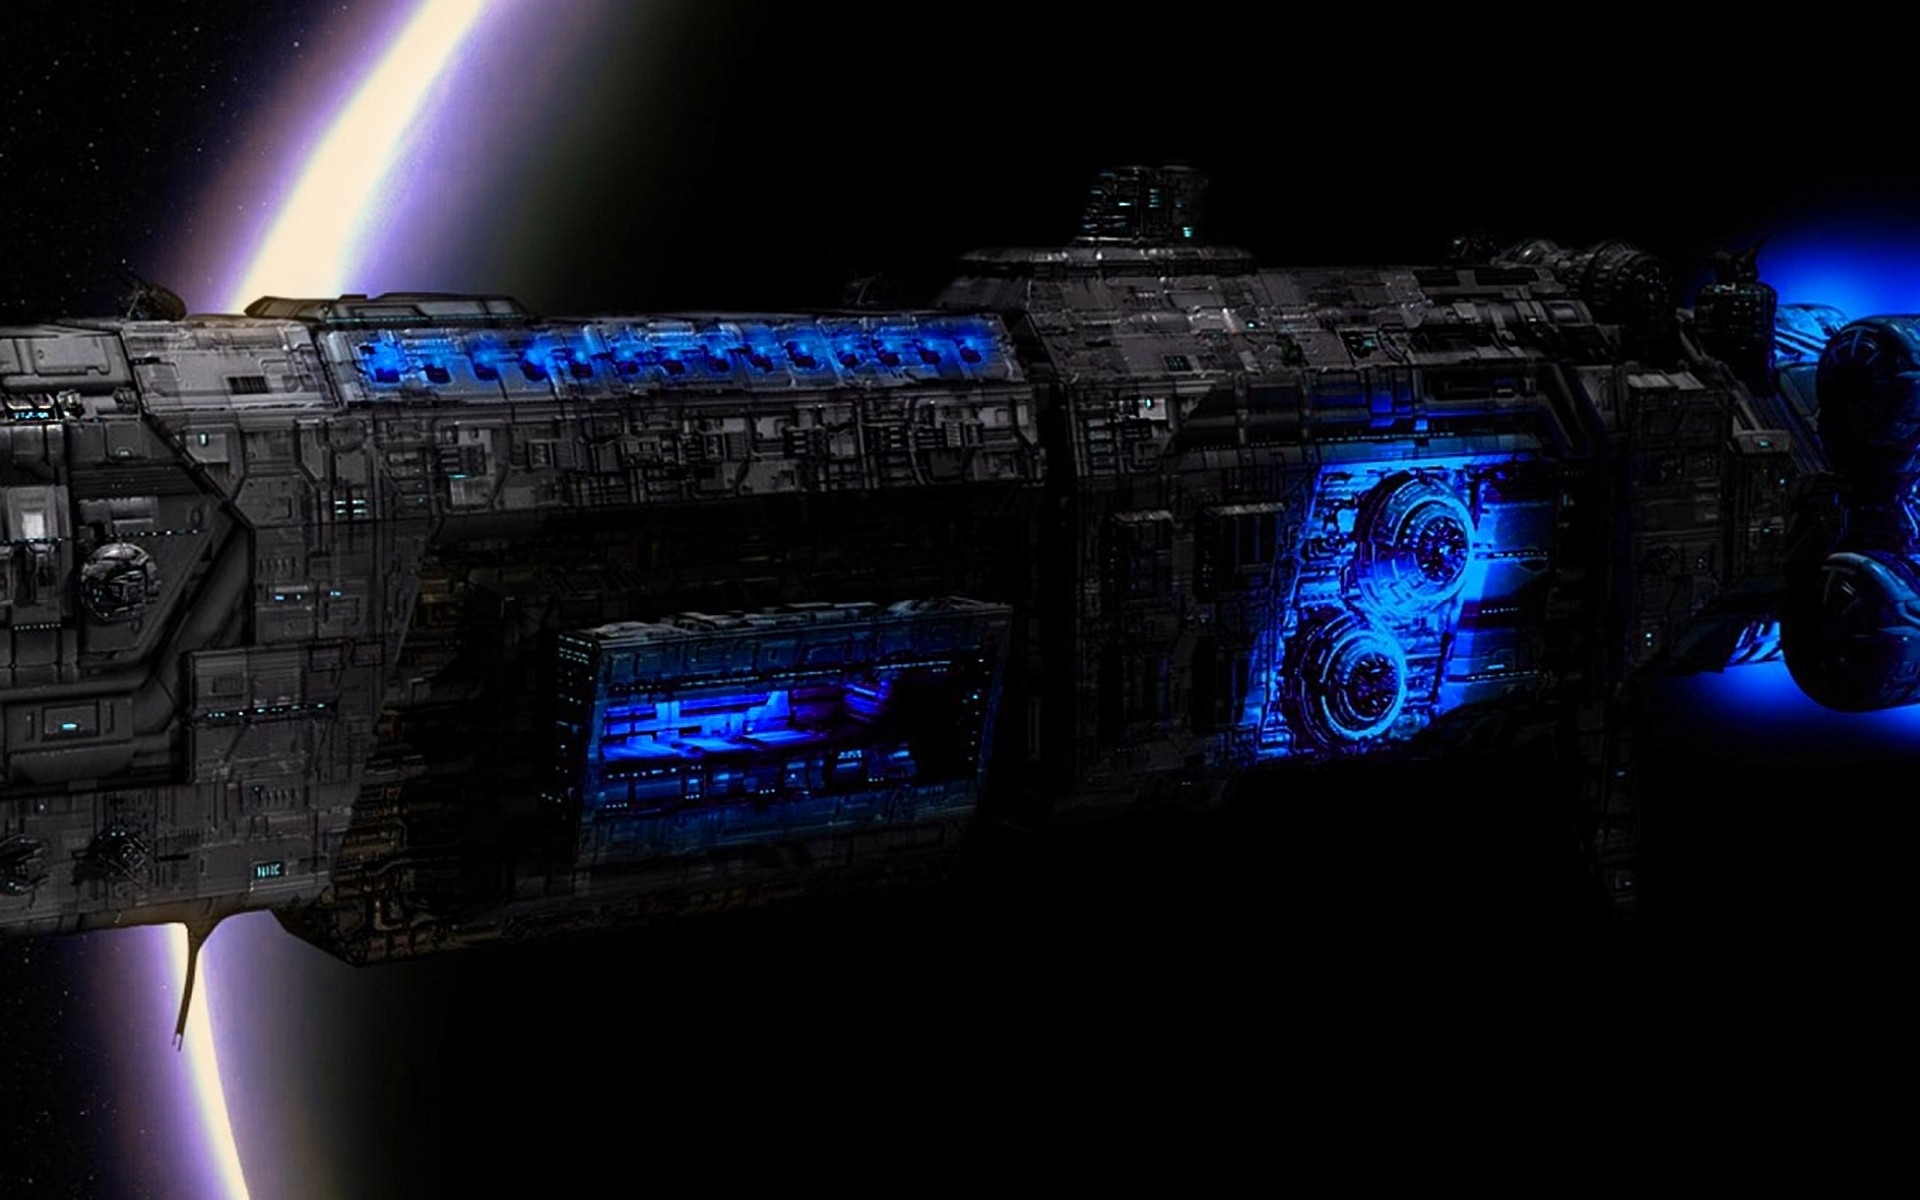 Outer Space Futuristic Spaceship Wallpaper